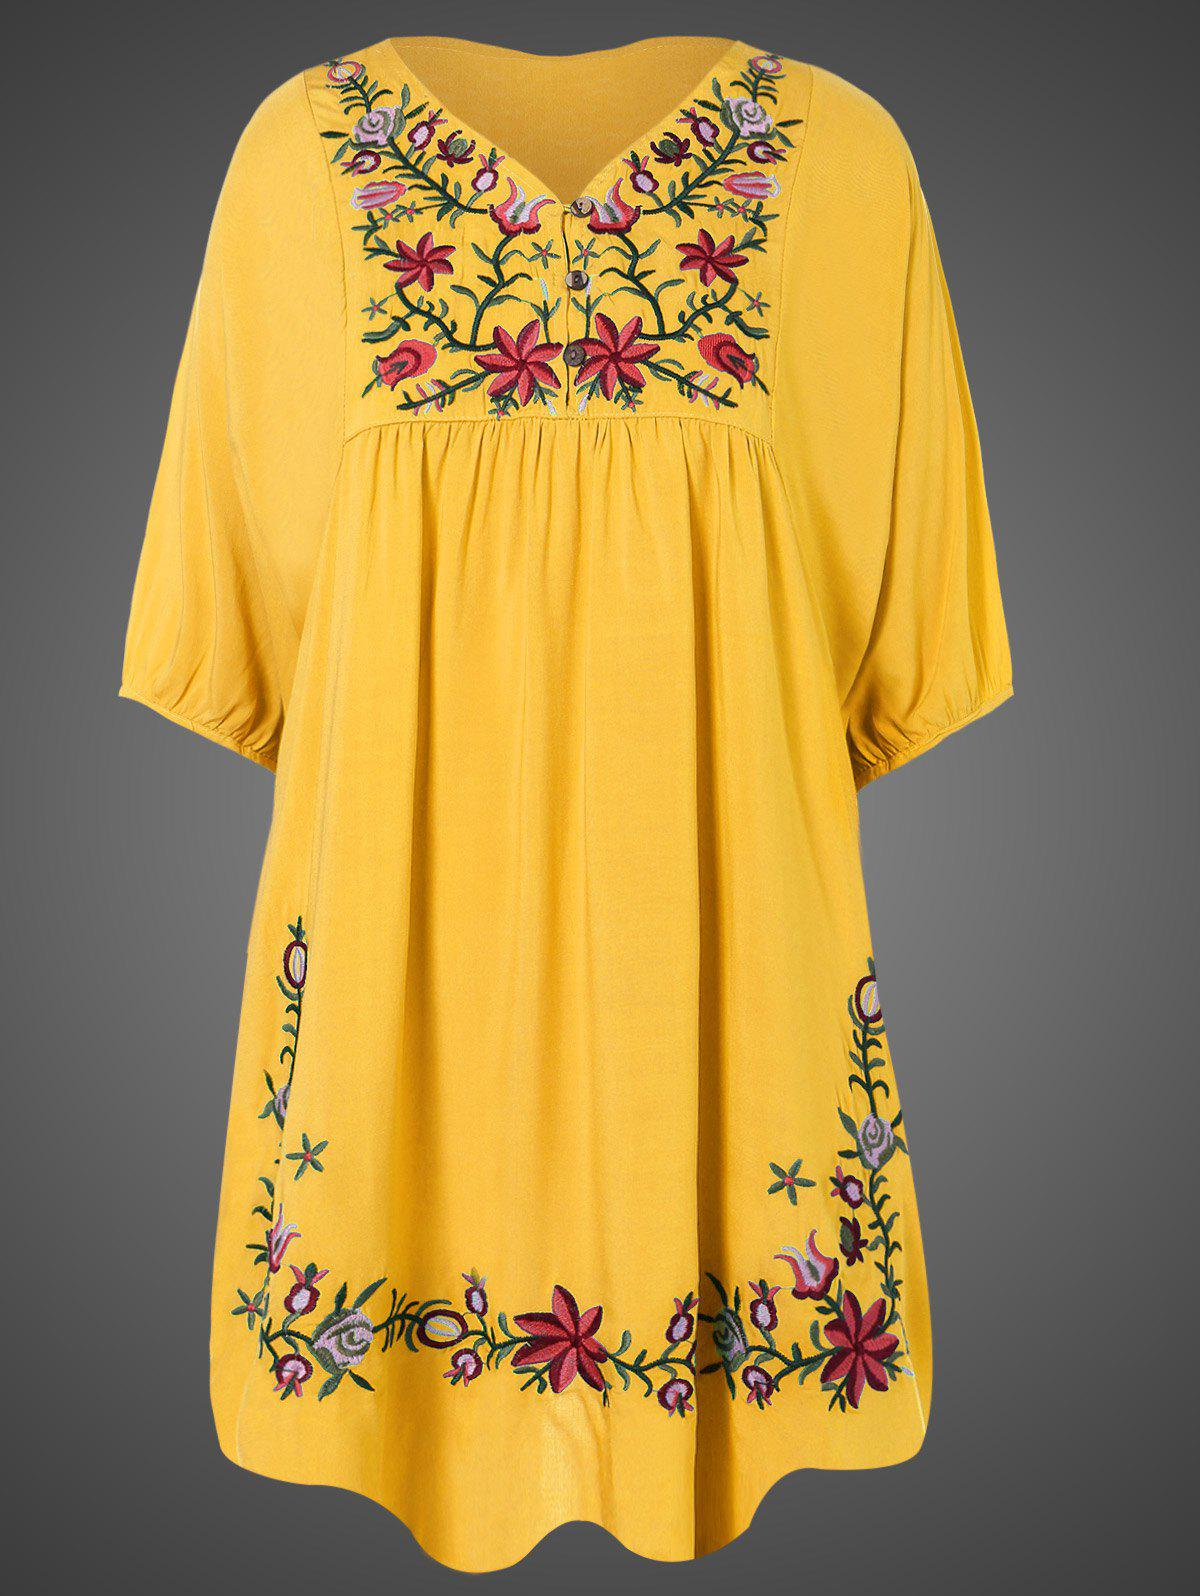 Robe tunique grande taille style casual avec broderies et manches courtes